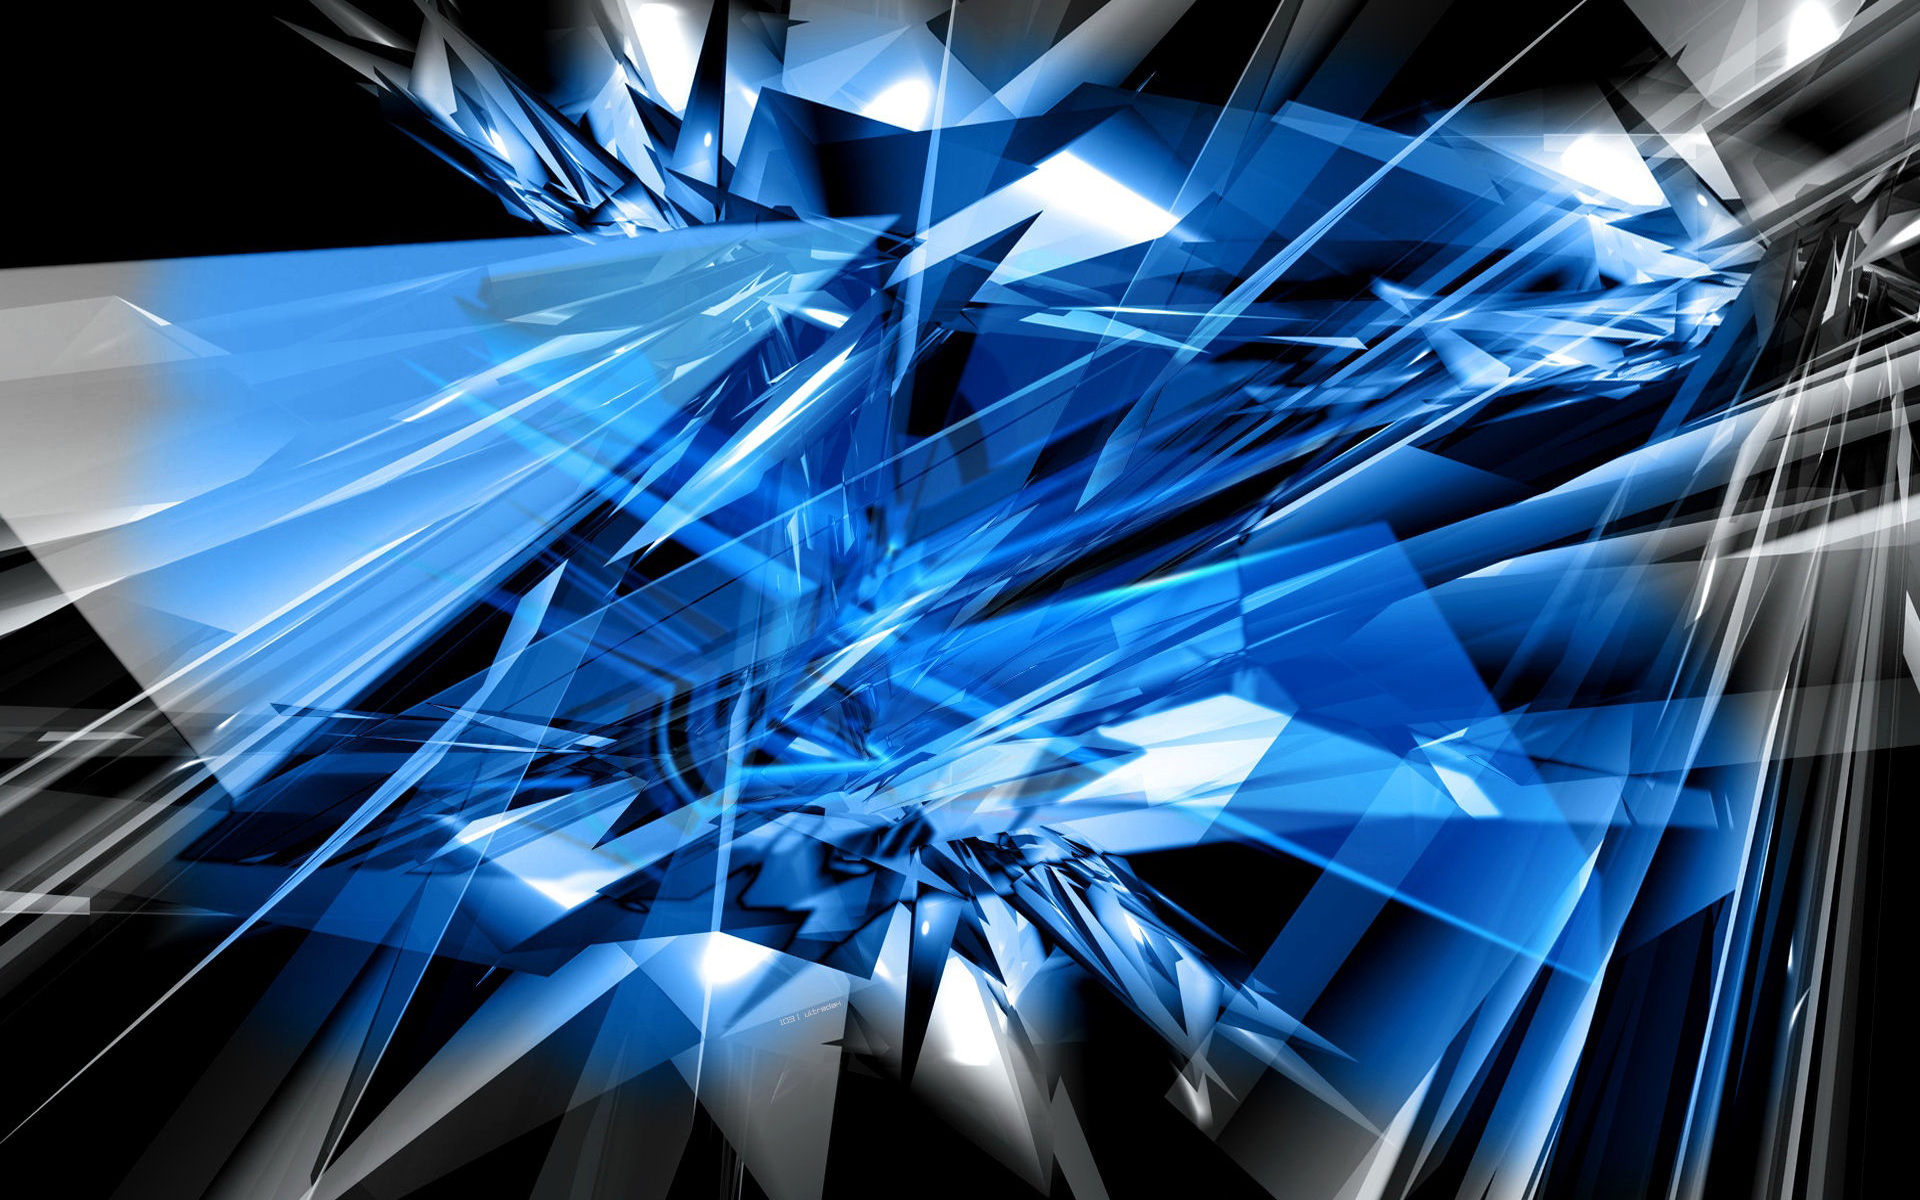 Abstract Blue 1920x1200